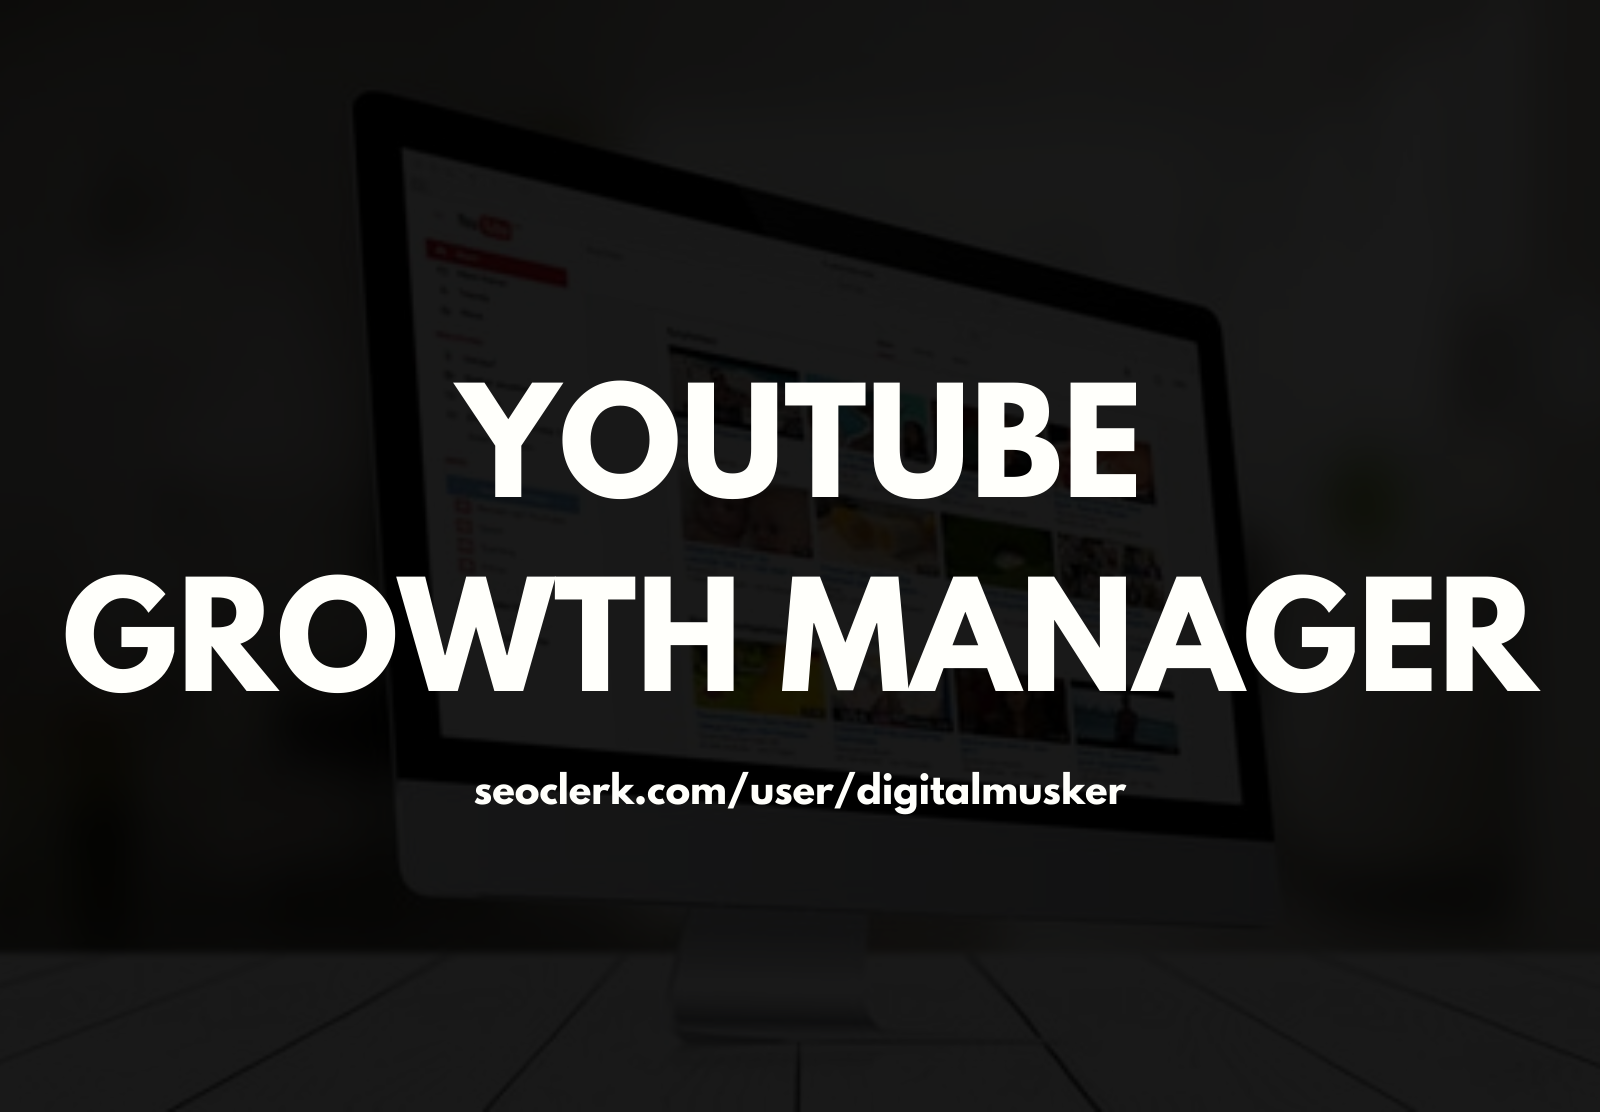 YouTube SEO Growth Manager For Top Ranking